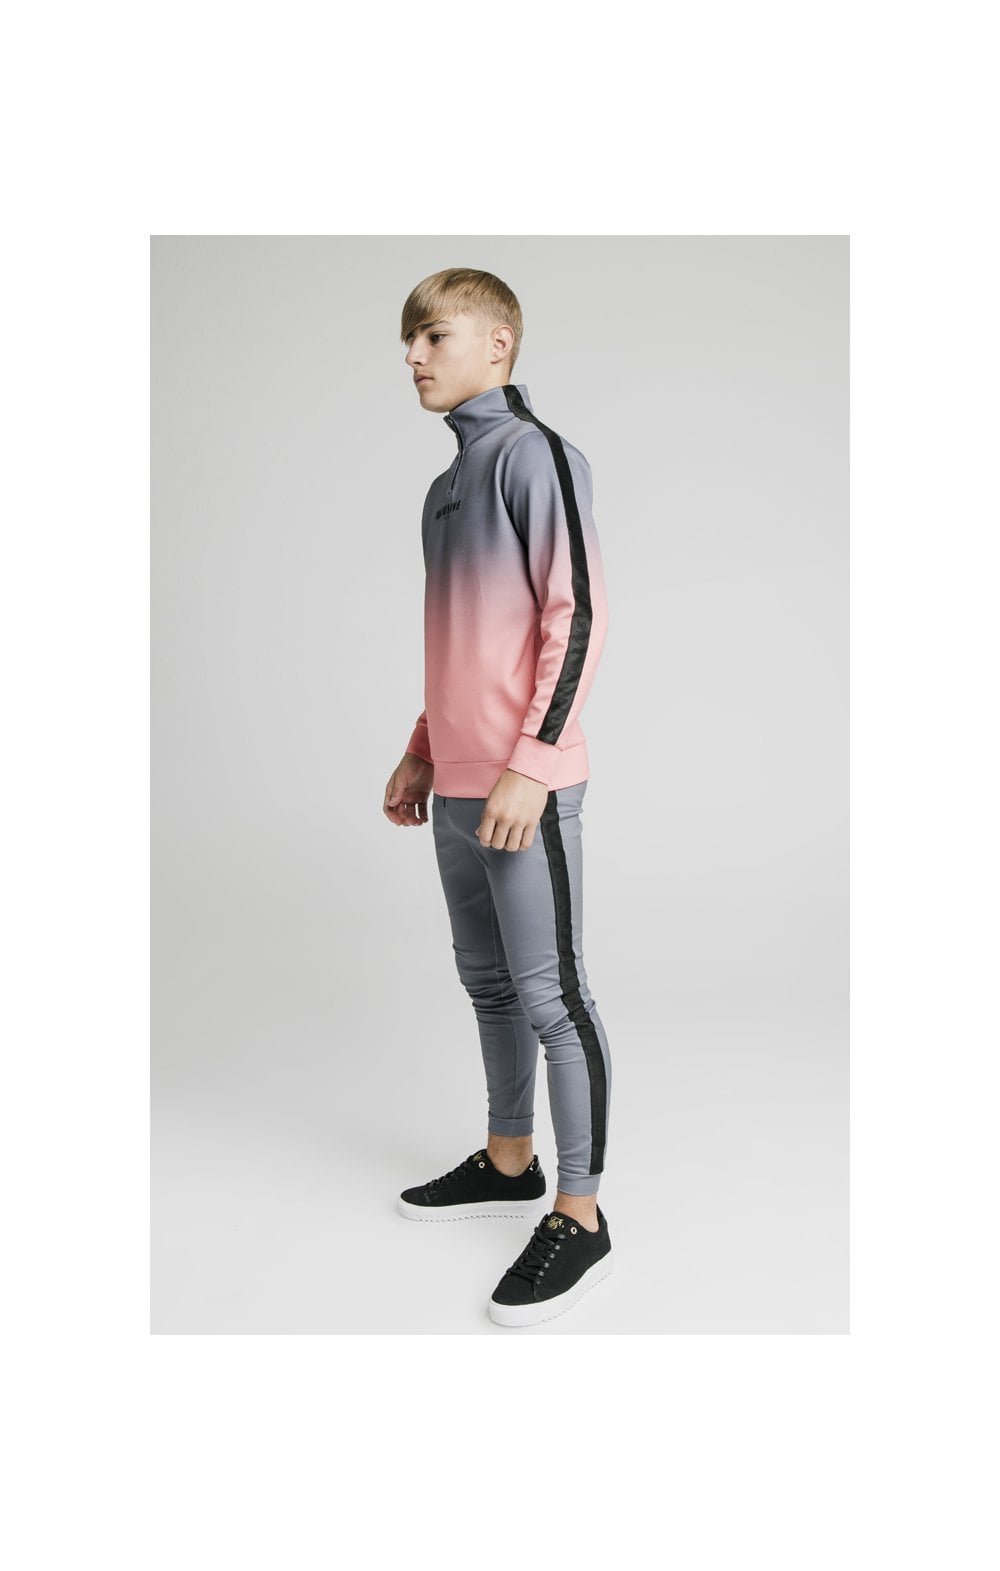 Illusive London Athlete Pants - Grey (5)